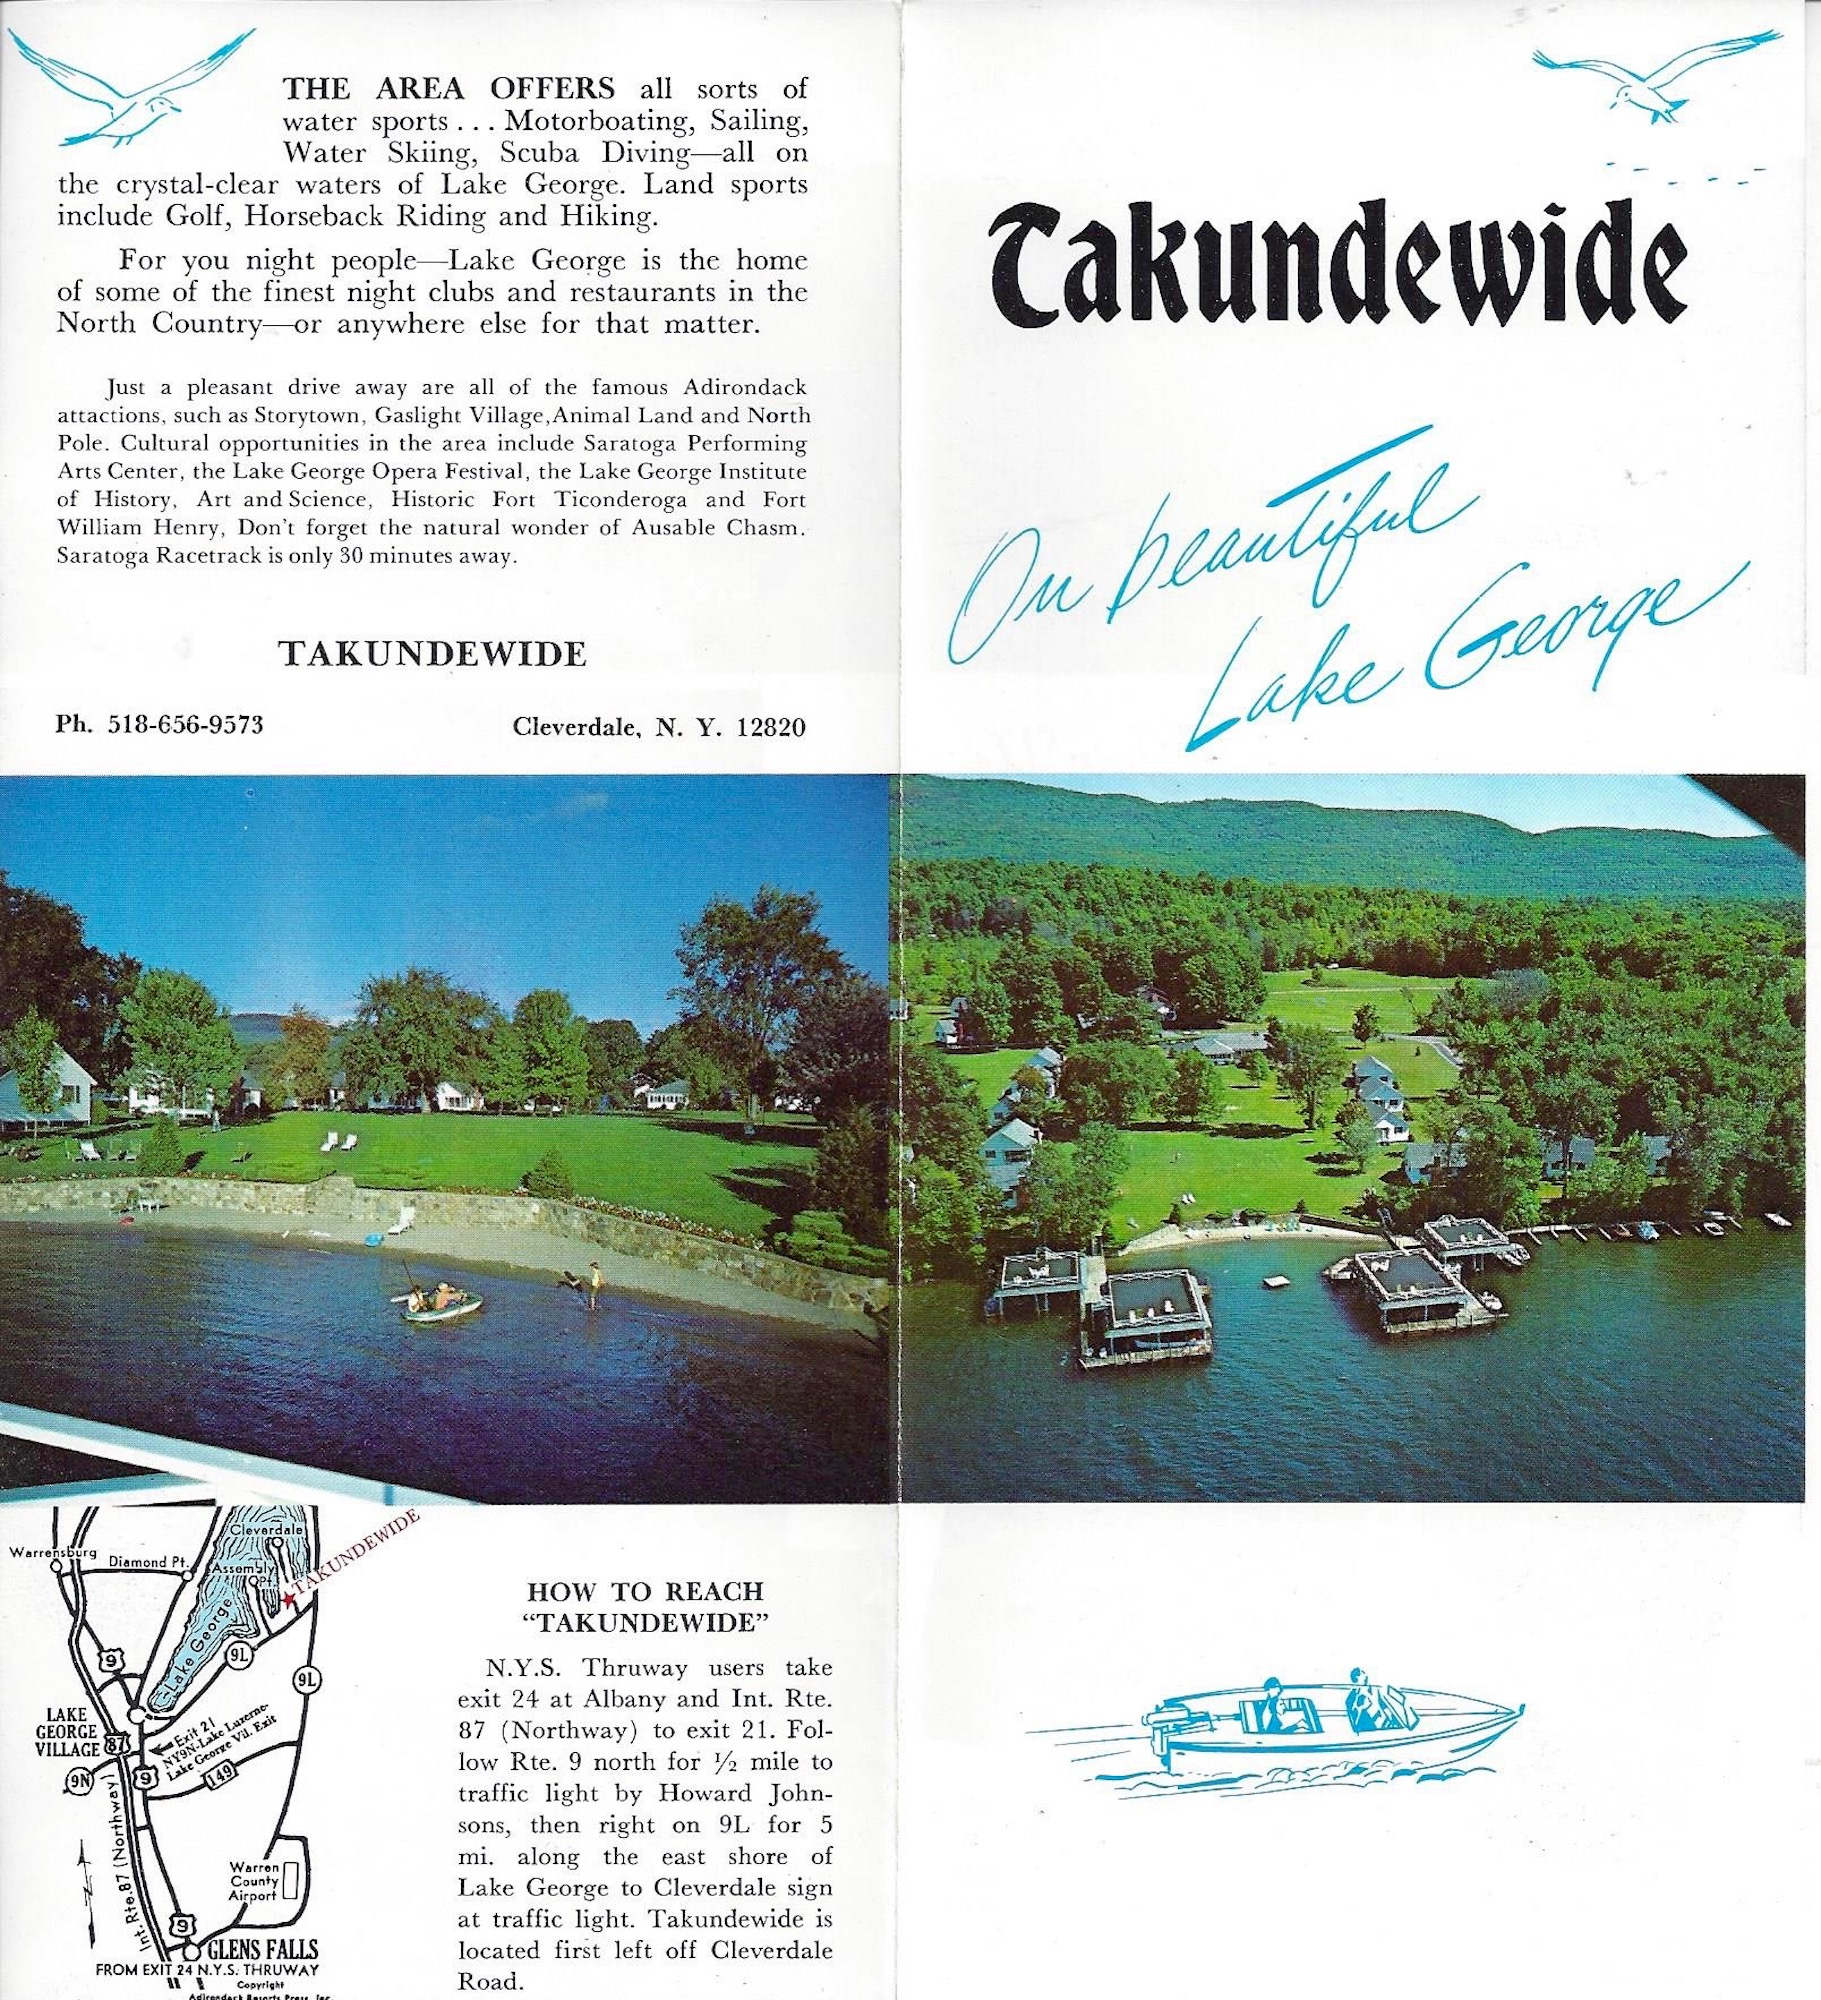 Takundewide brochure from 1970